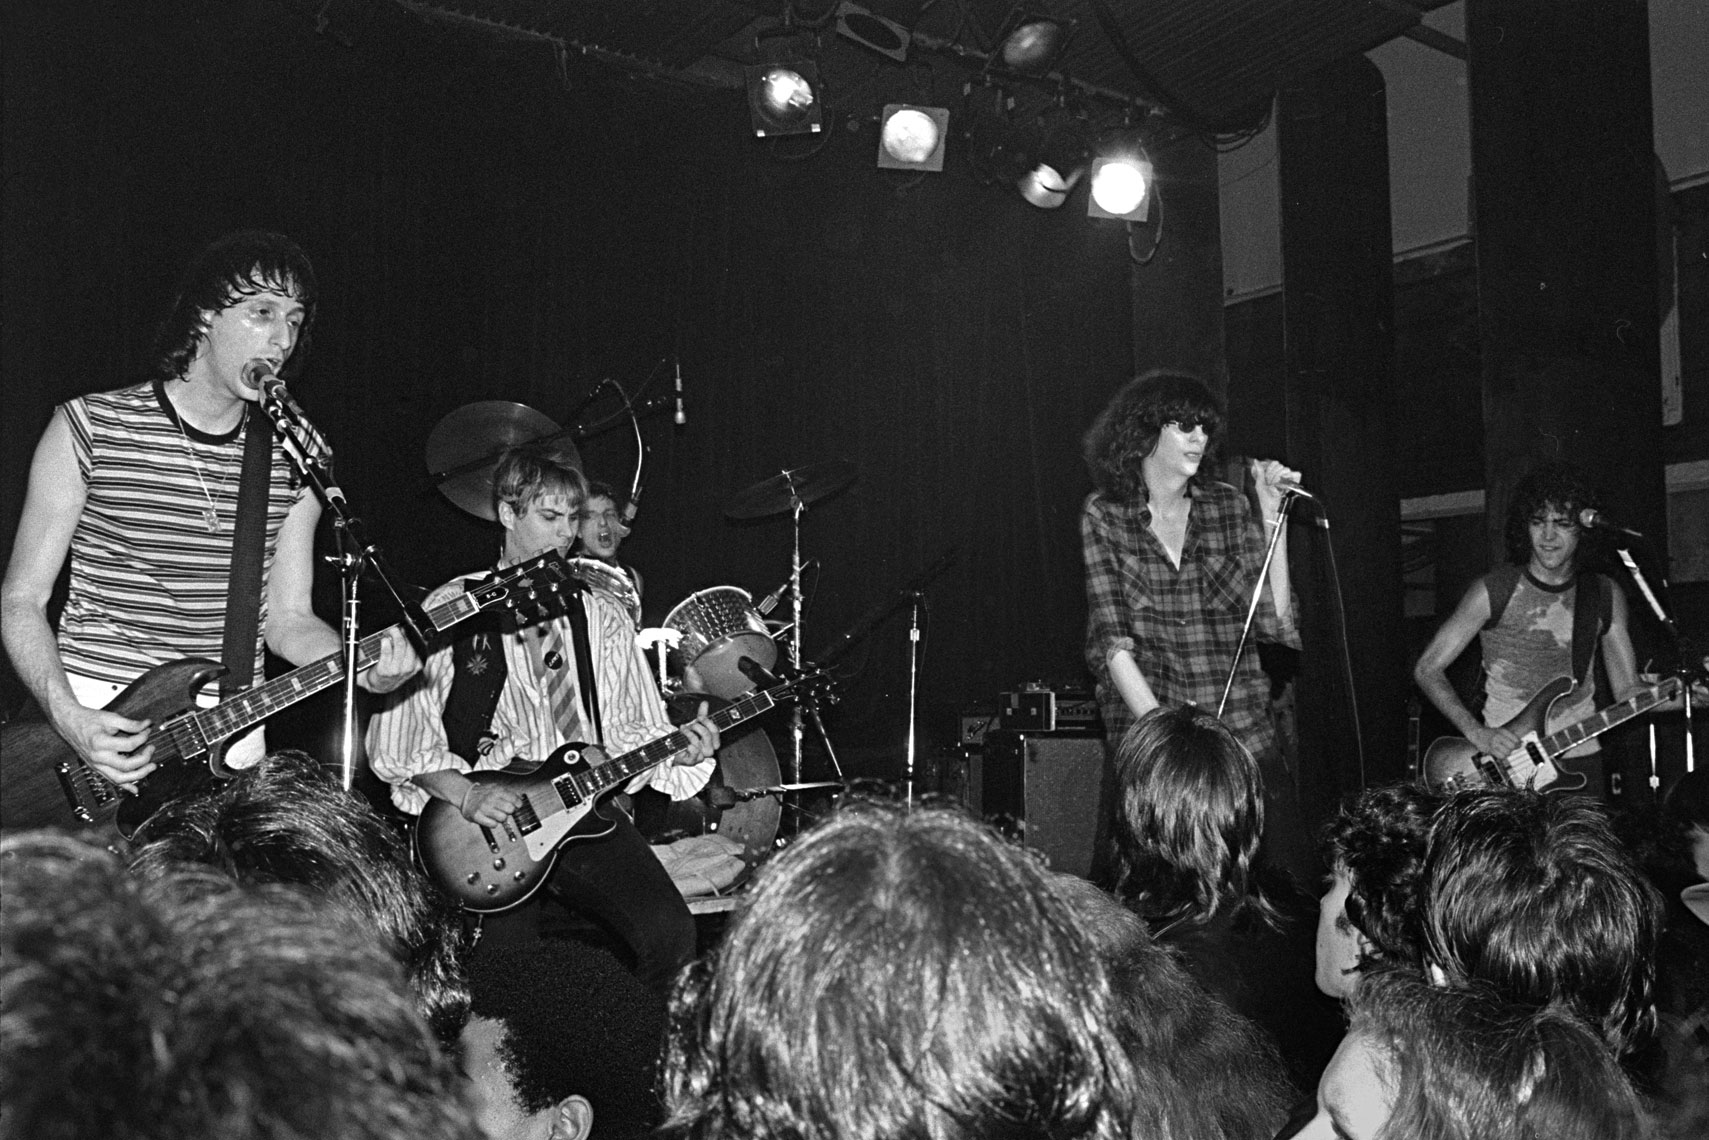 099_108_062_Irving-Plaza_The-Rattlers-with-Joey-Ramone